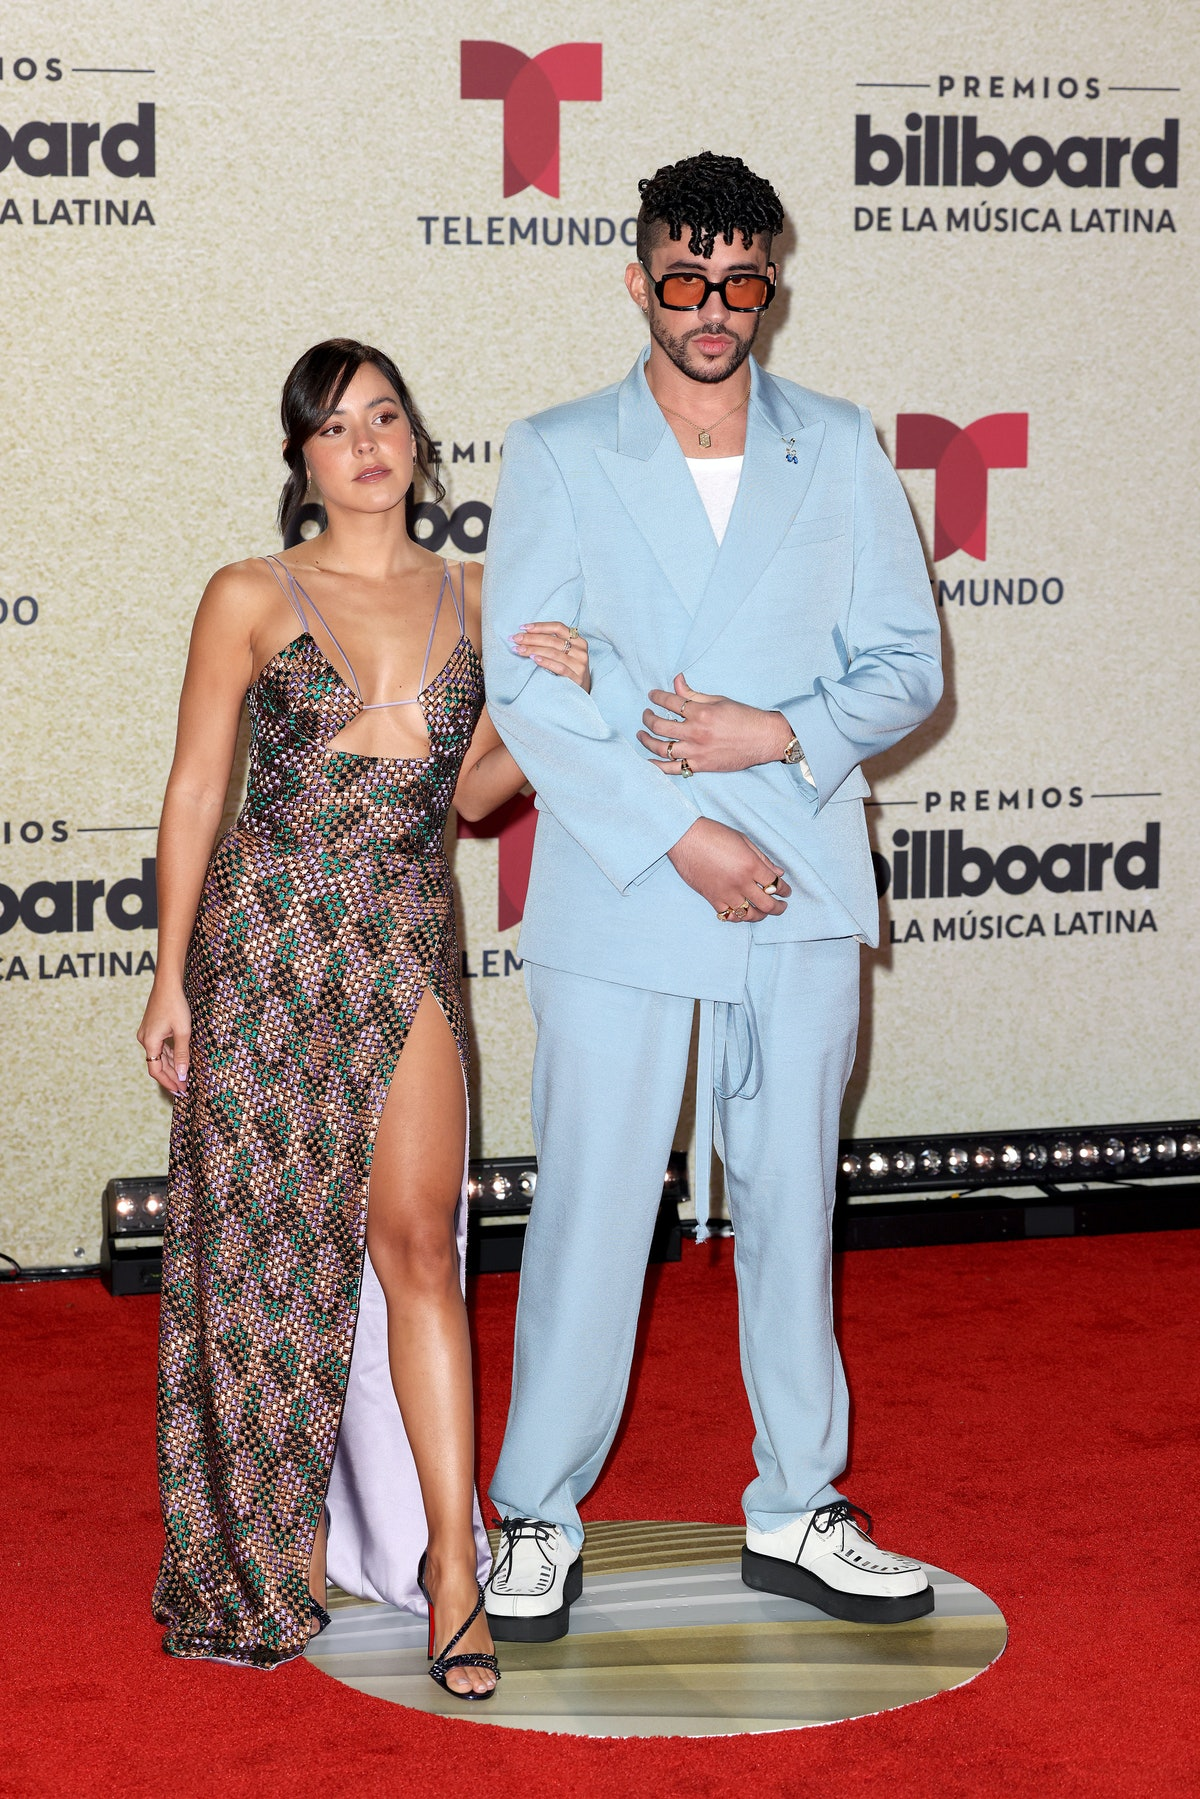 Gabriela Berlingeri, Bad Bunny on the red carpet at the Watsco Center in Coral Gables, FL on Septemb...